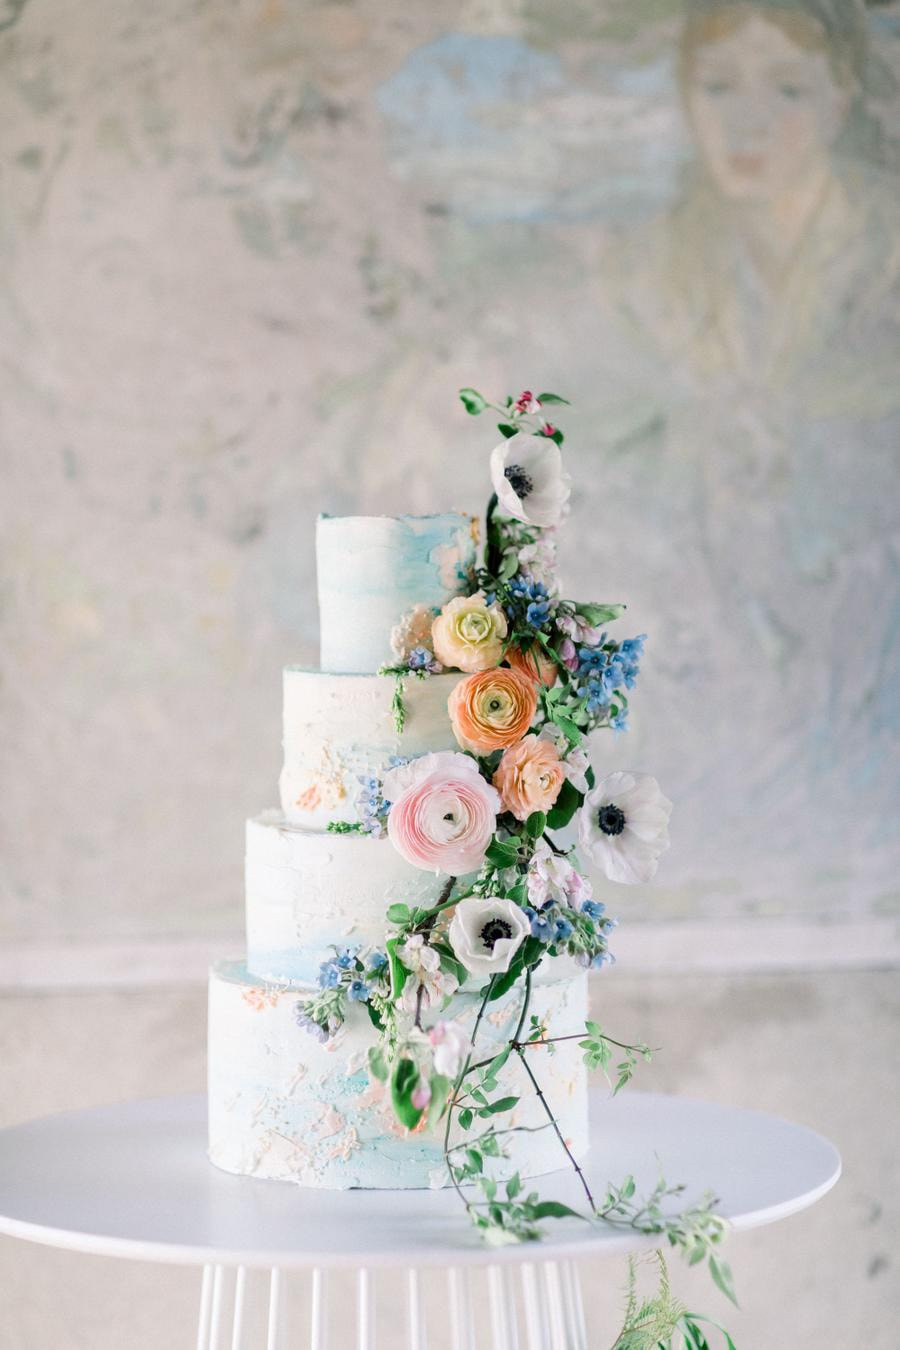 Romantic spring pastel buttercream wedding cake in pale blue and peach with cascading fresh flowers and greenery | Photography: Kate Preftakes via Style Me Pretty